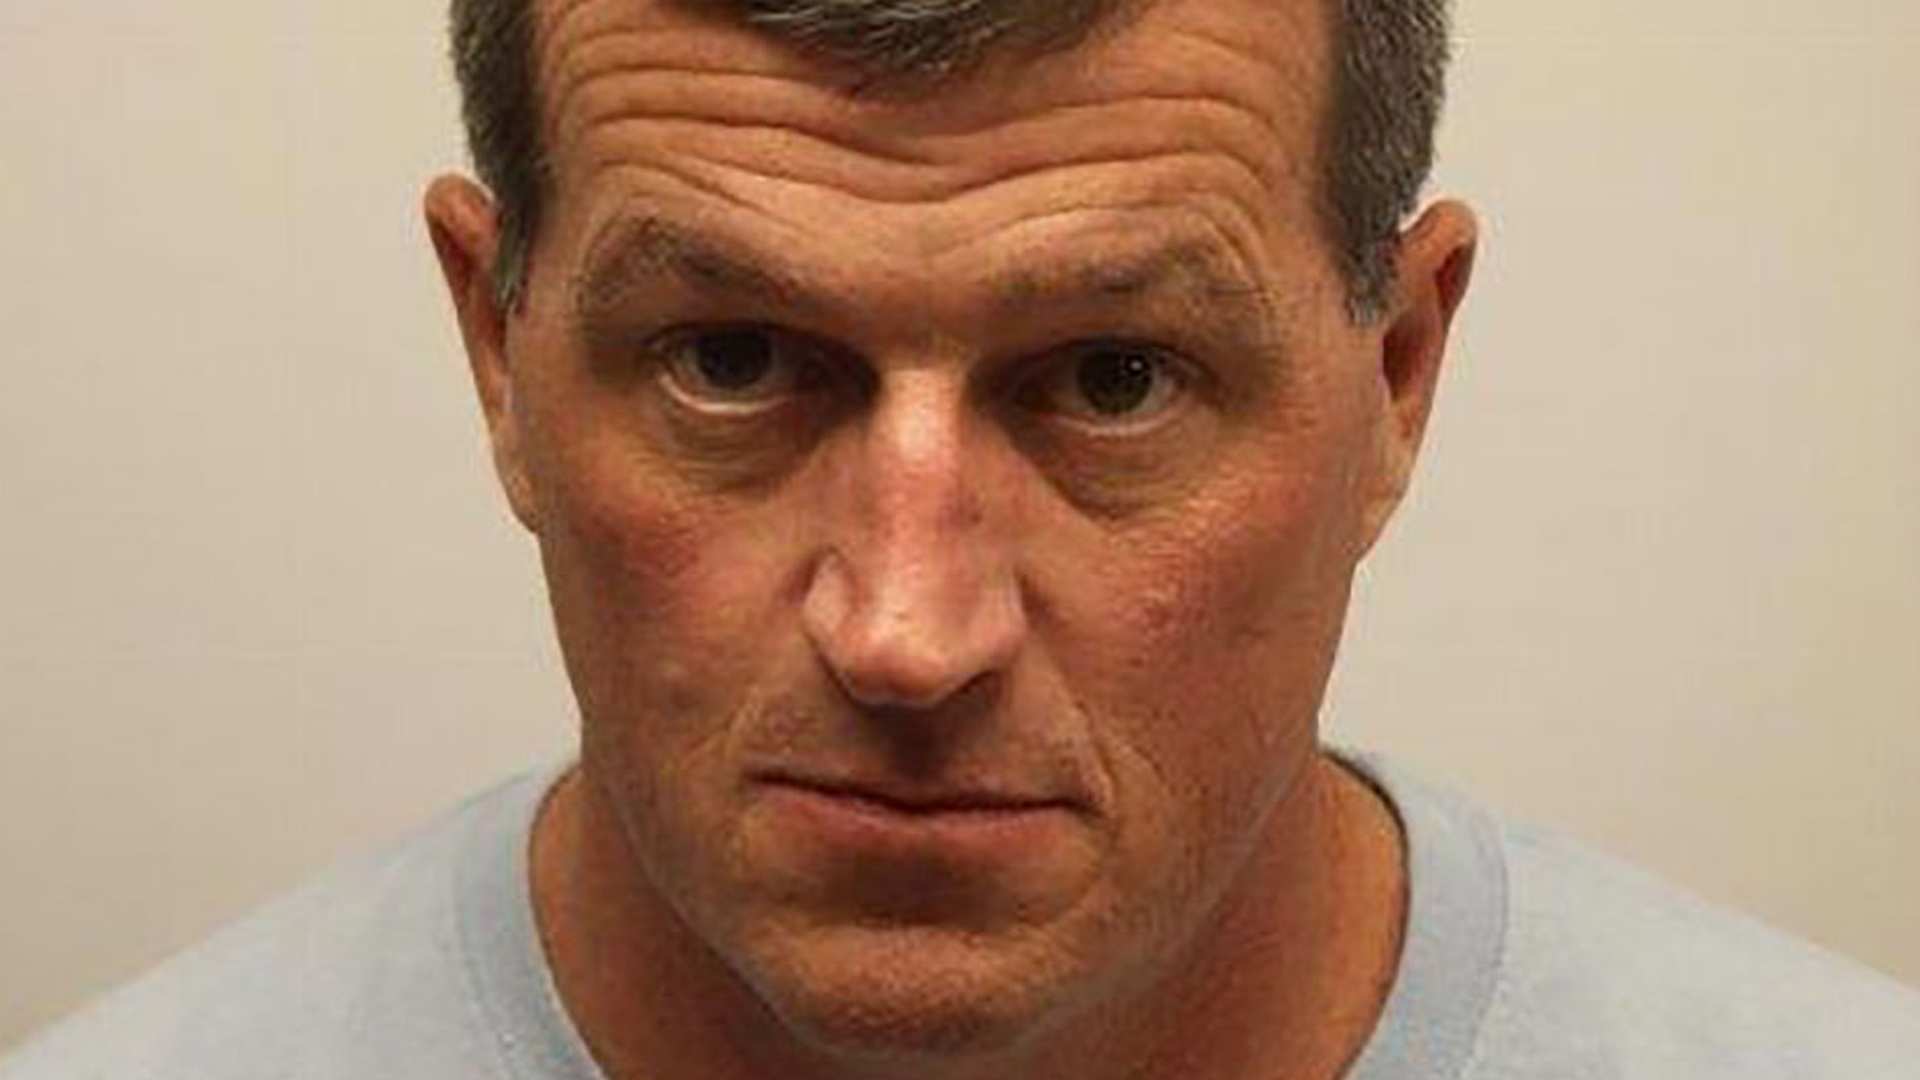 Thomas Callaway appears in a photo released by the Chatham County Sheriff's Office in December 2019.